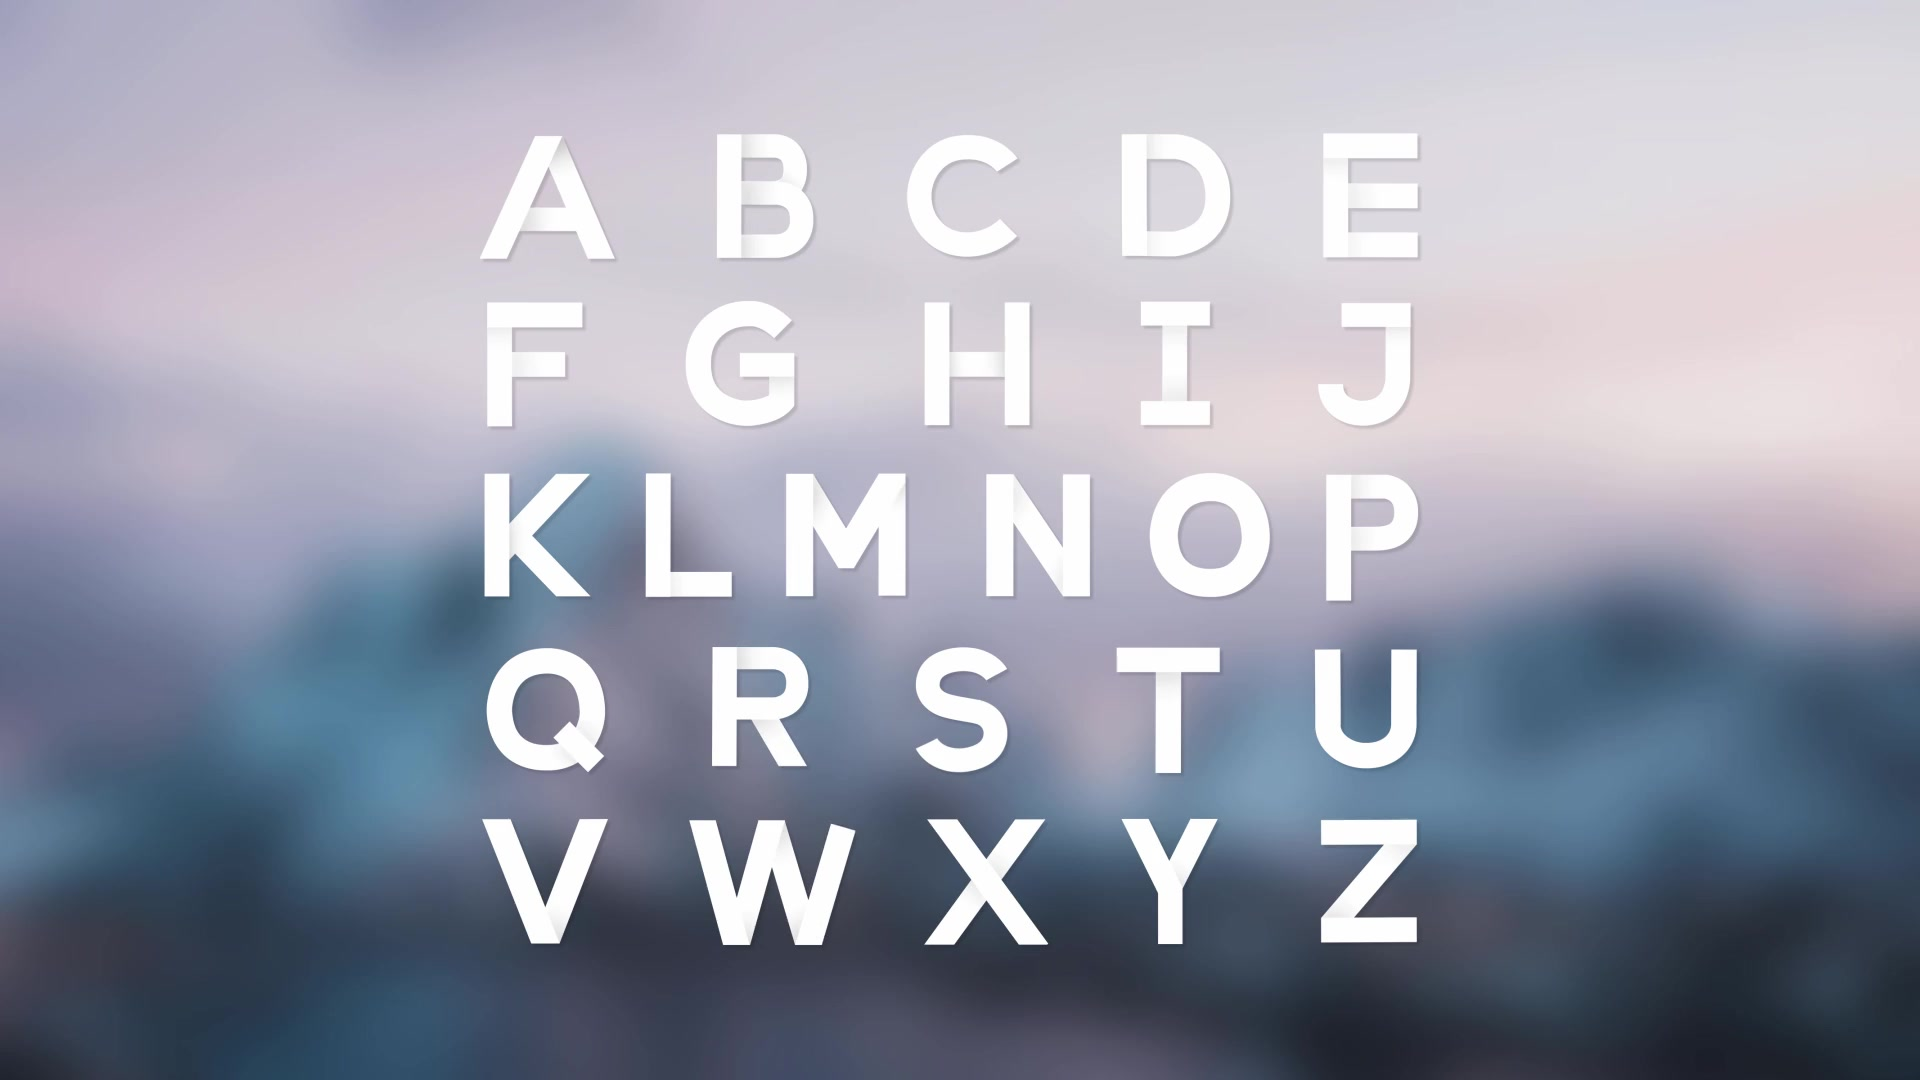 Paper Grotesque Shady Animated Typeface - Download Videohive 16453672